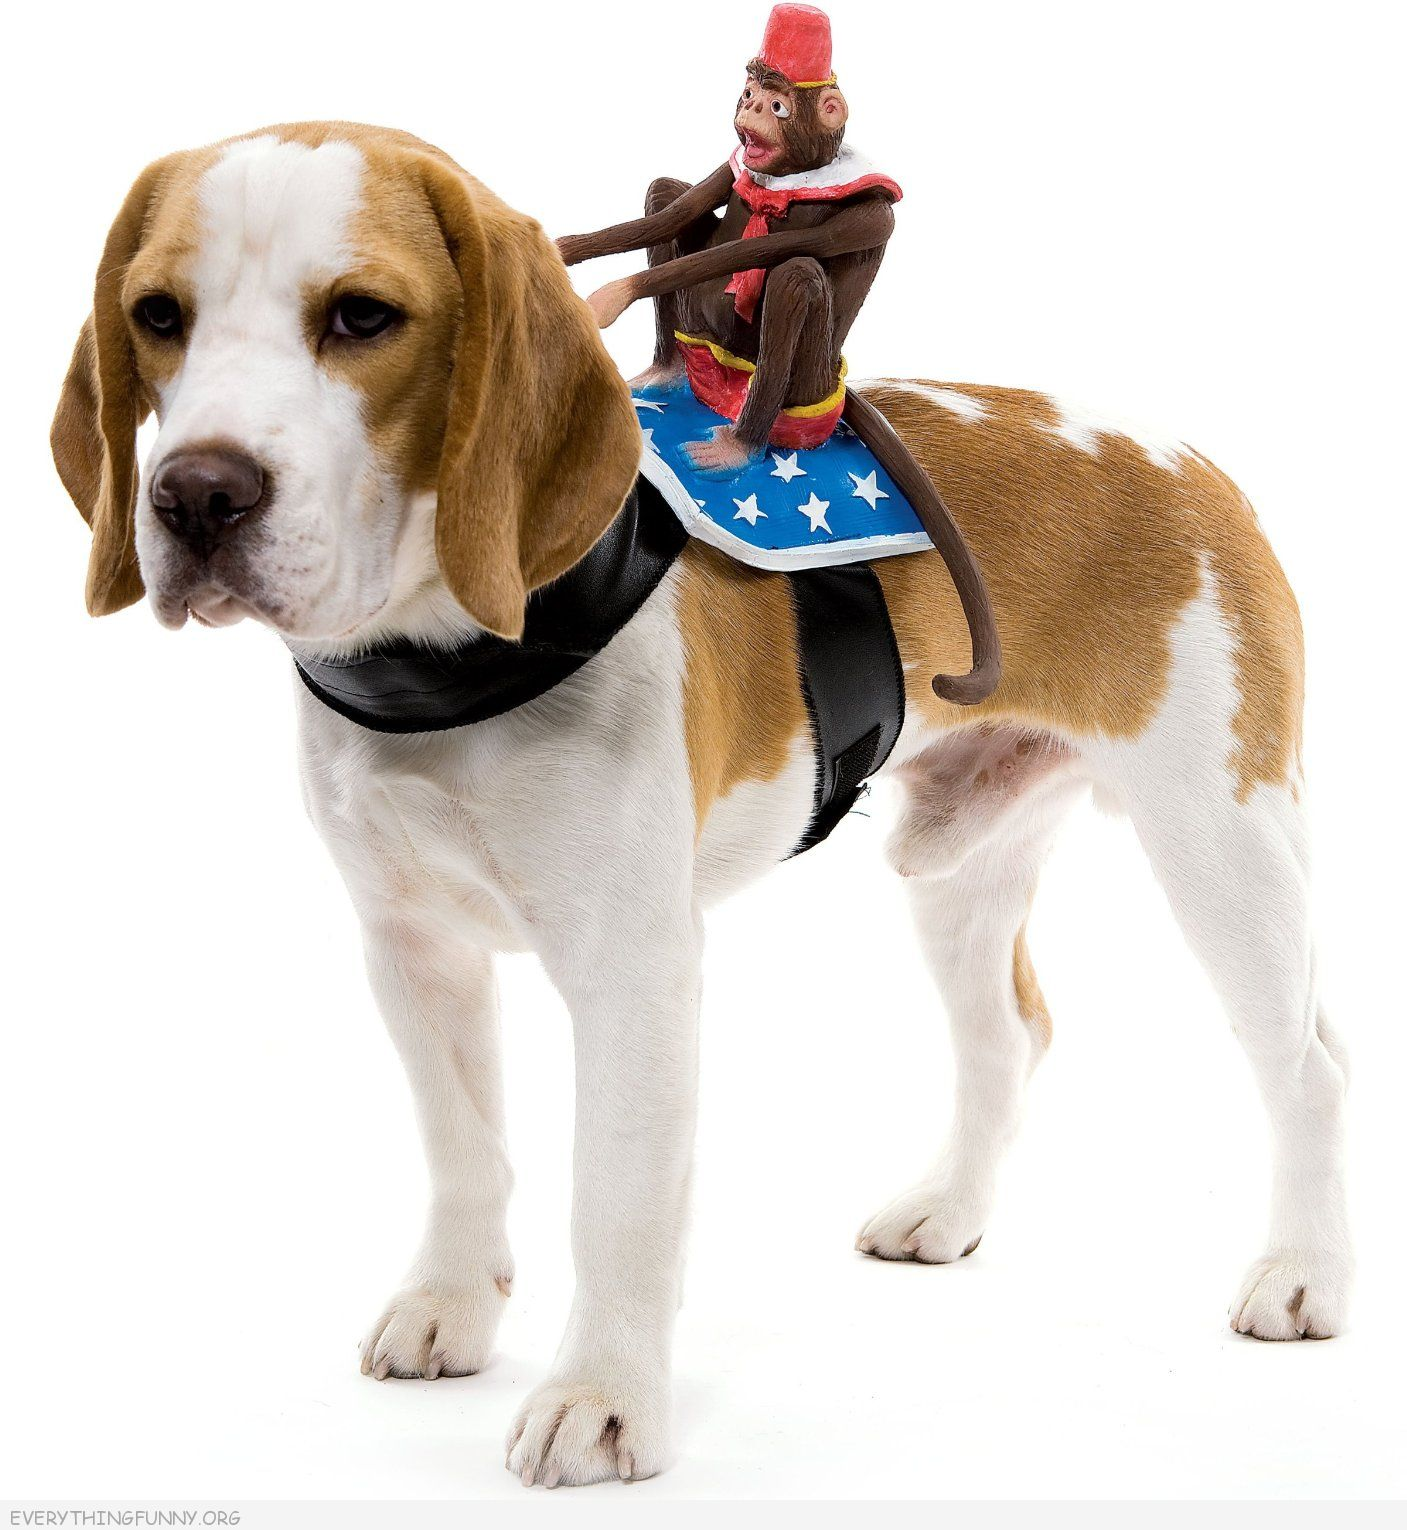 funny gifts pet costume monkey riding harness funny dog costumes